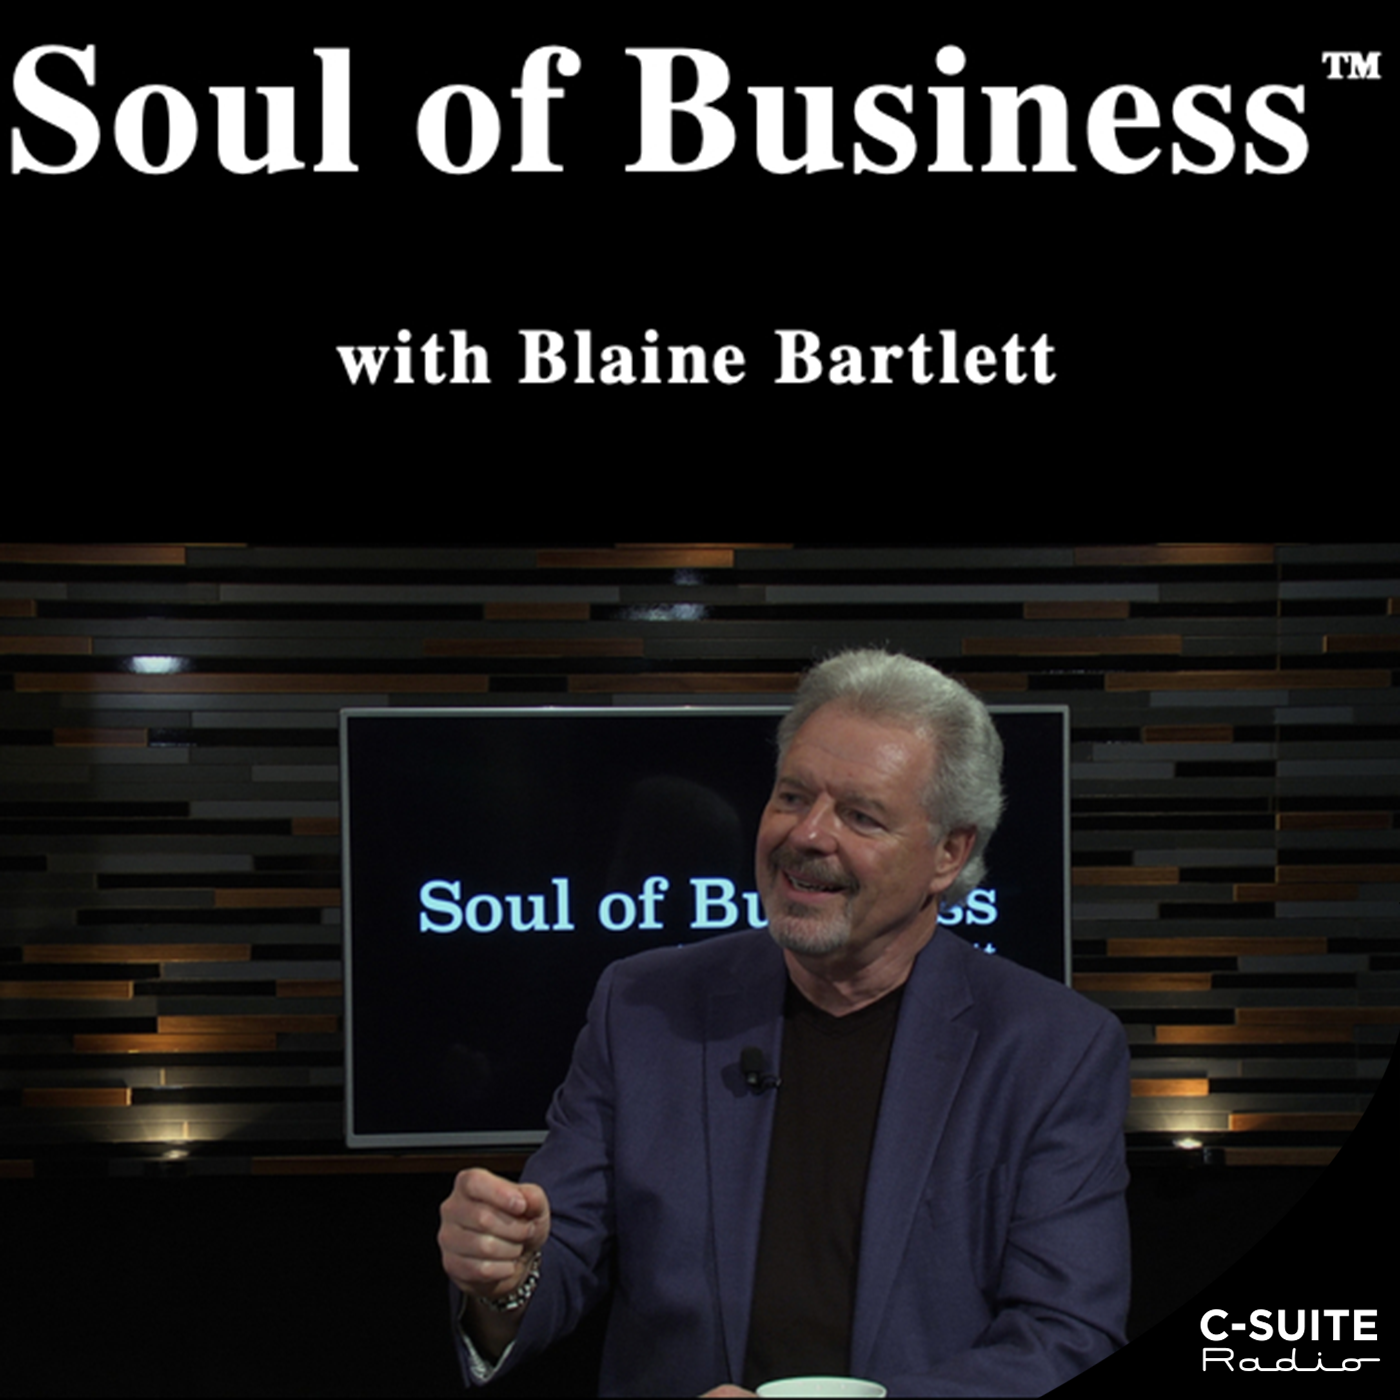 Soul of Business with Blaine Bartlett